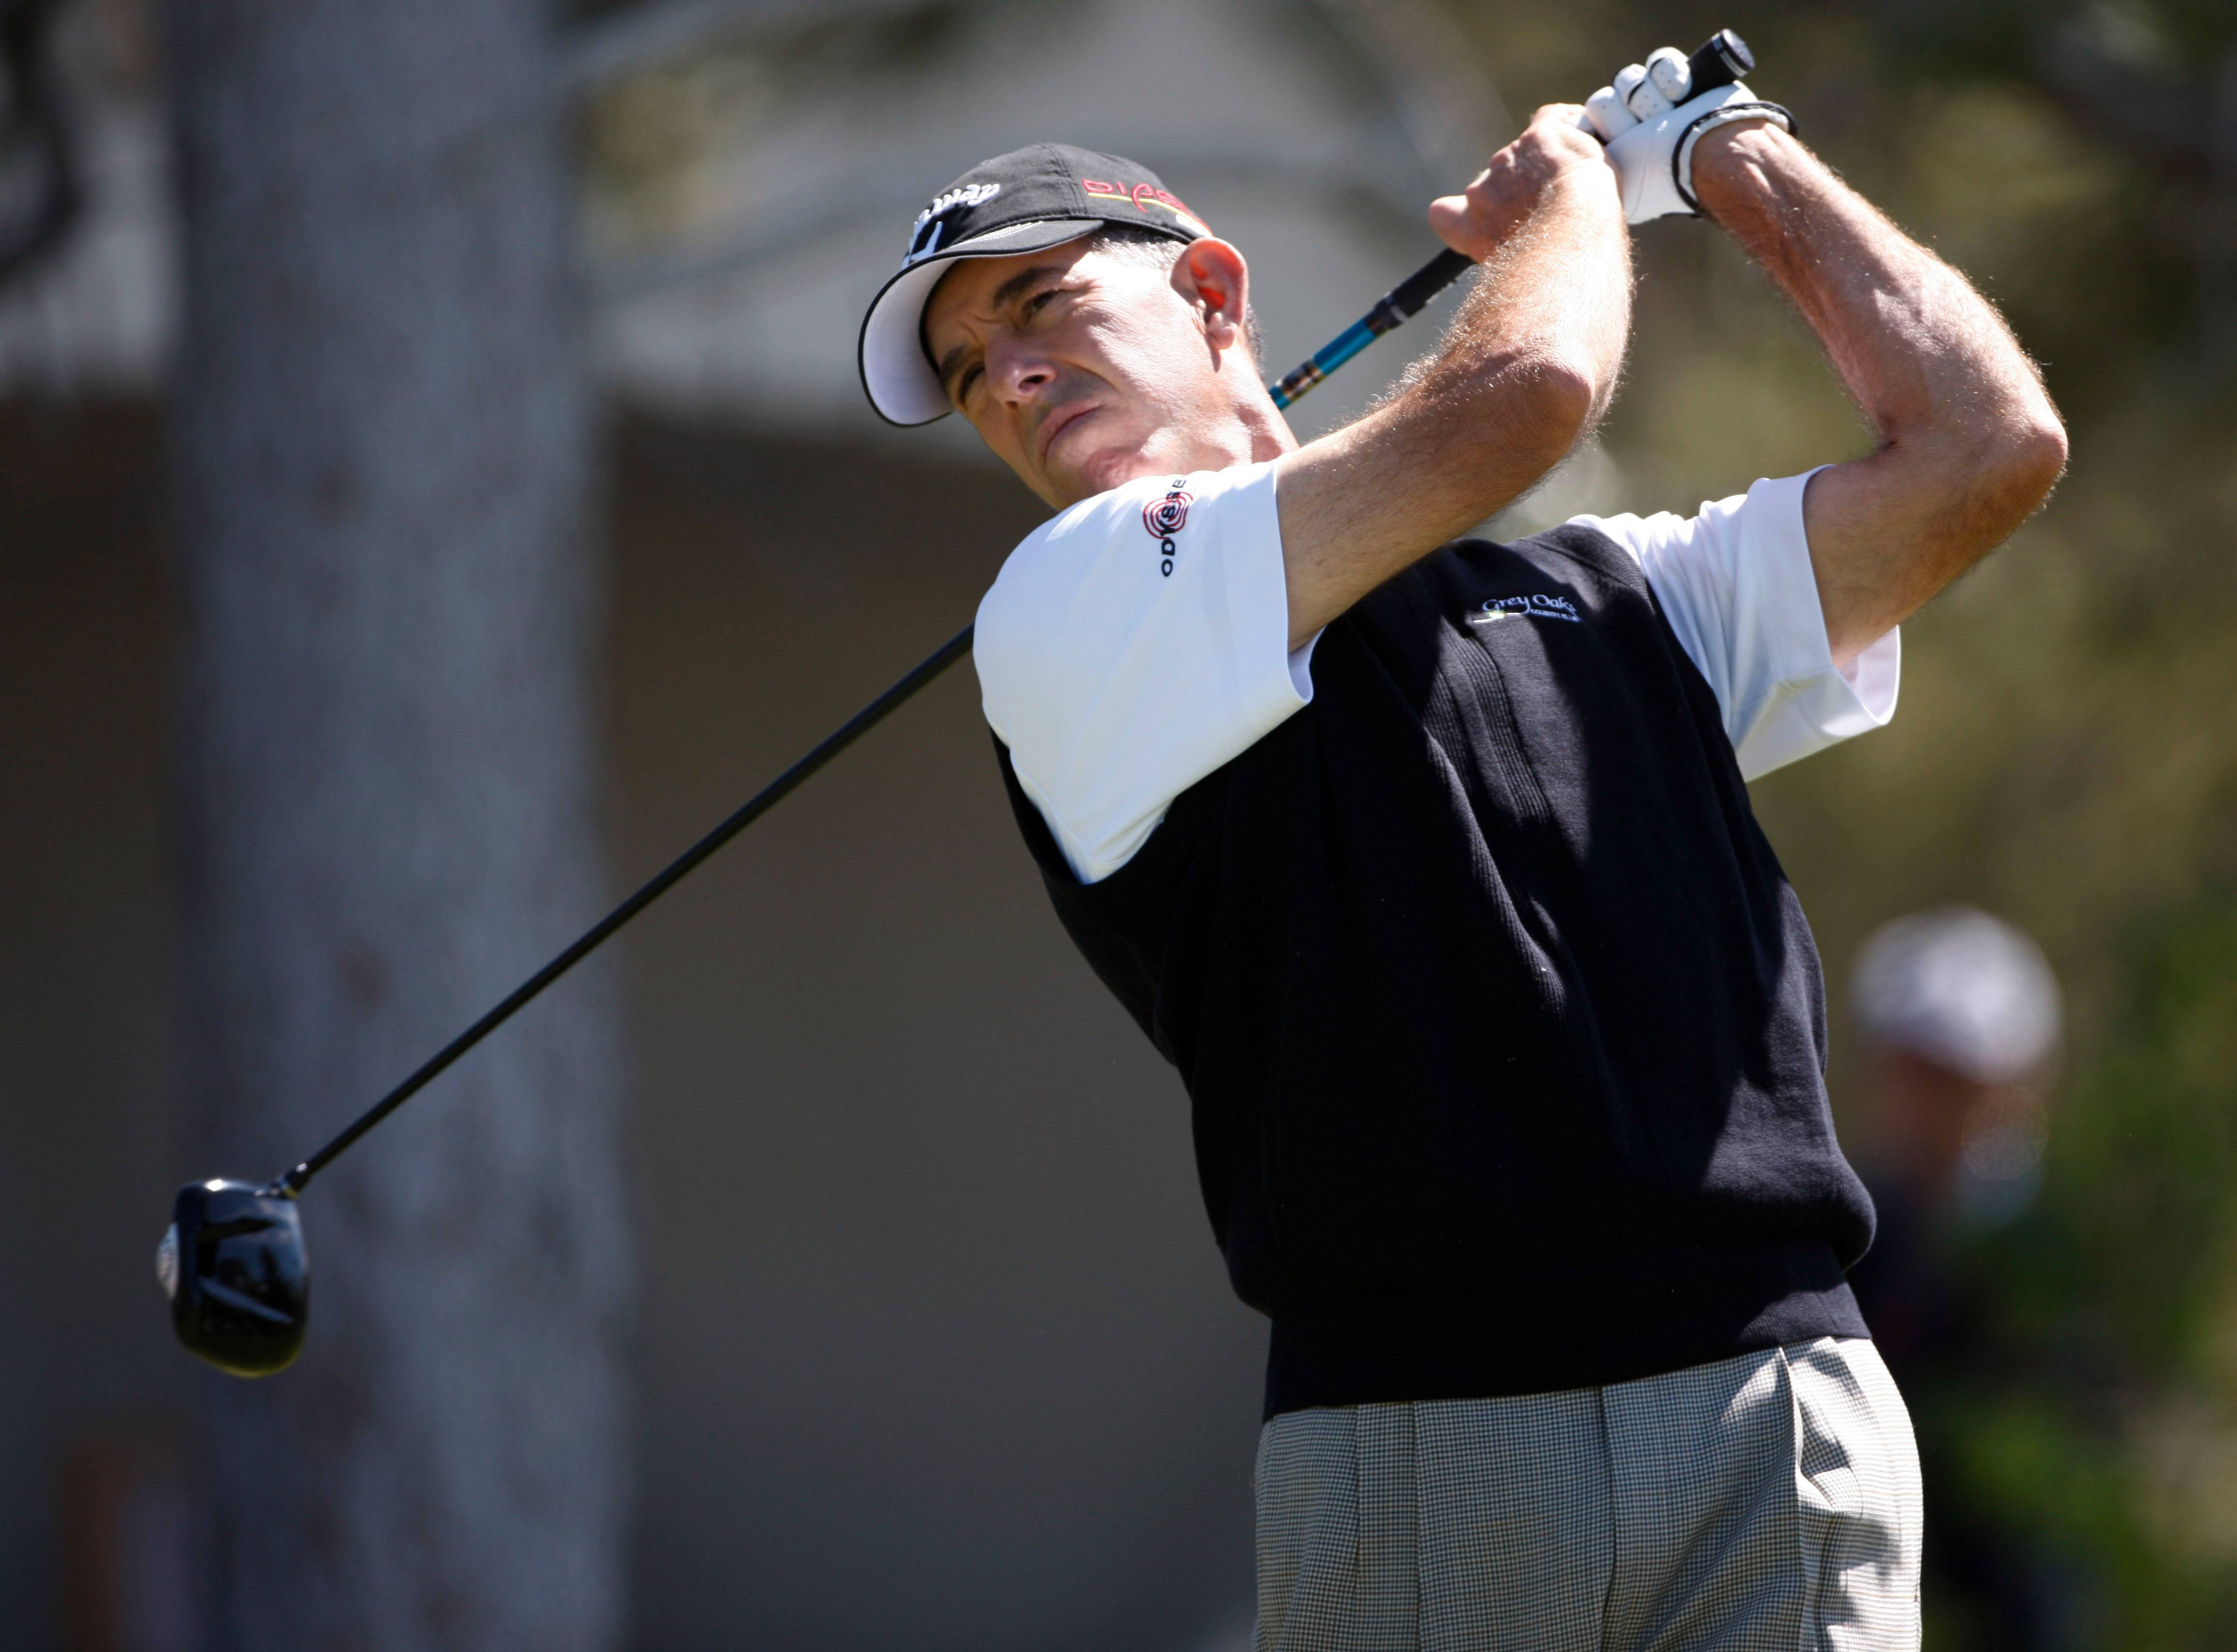 Chip Beck may be best remembered as a PGA Tour player for the 59 he shot in the 1991 Las Vegas Invitational, but he did win four times on the premier circuit and was runner-up in the 1993 Masters as well as the 1986 and 1989 U.S. Opens.